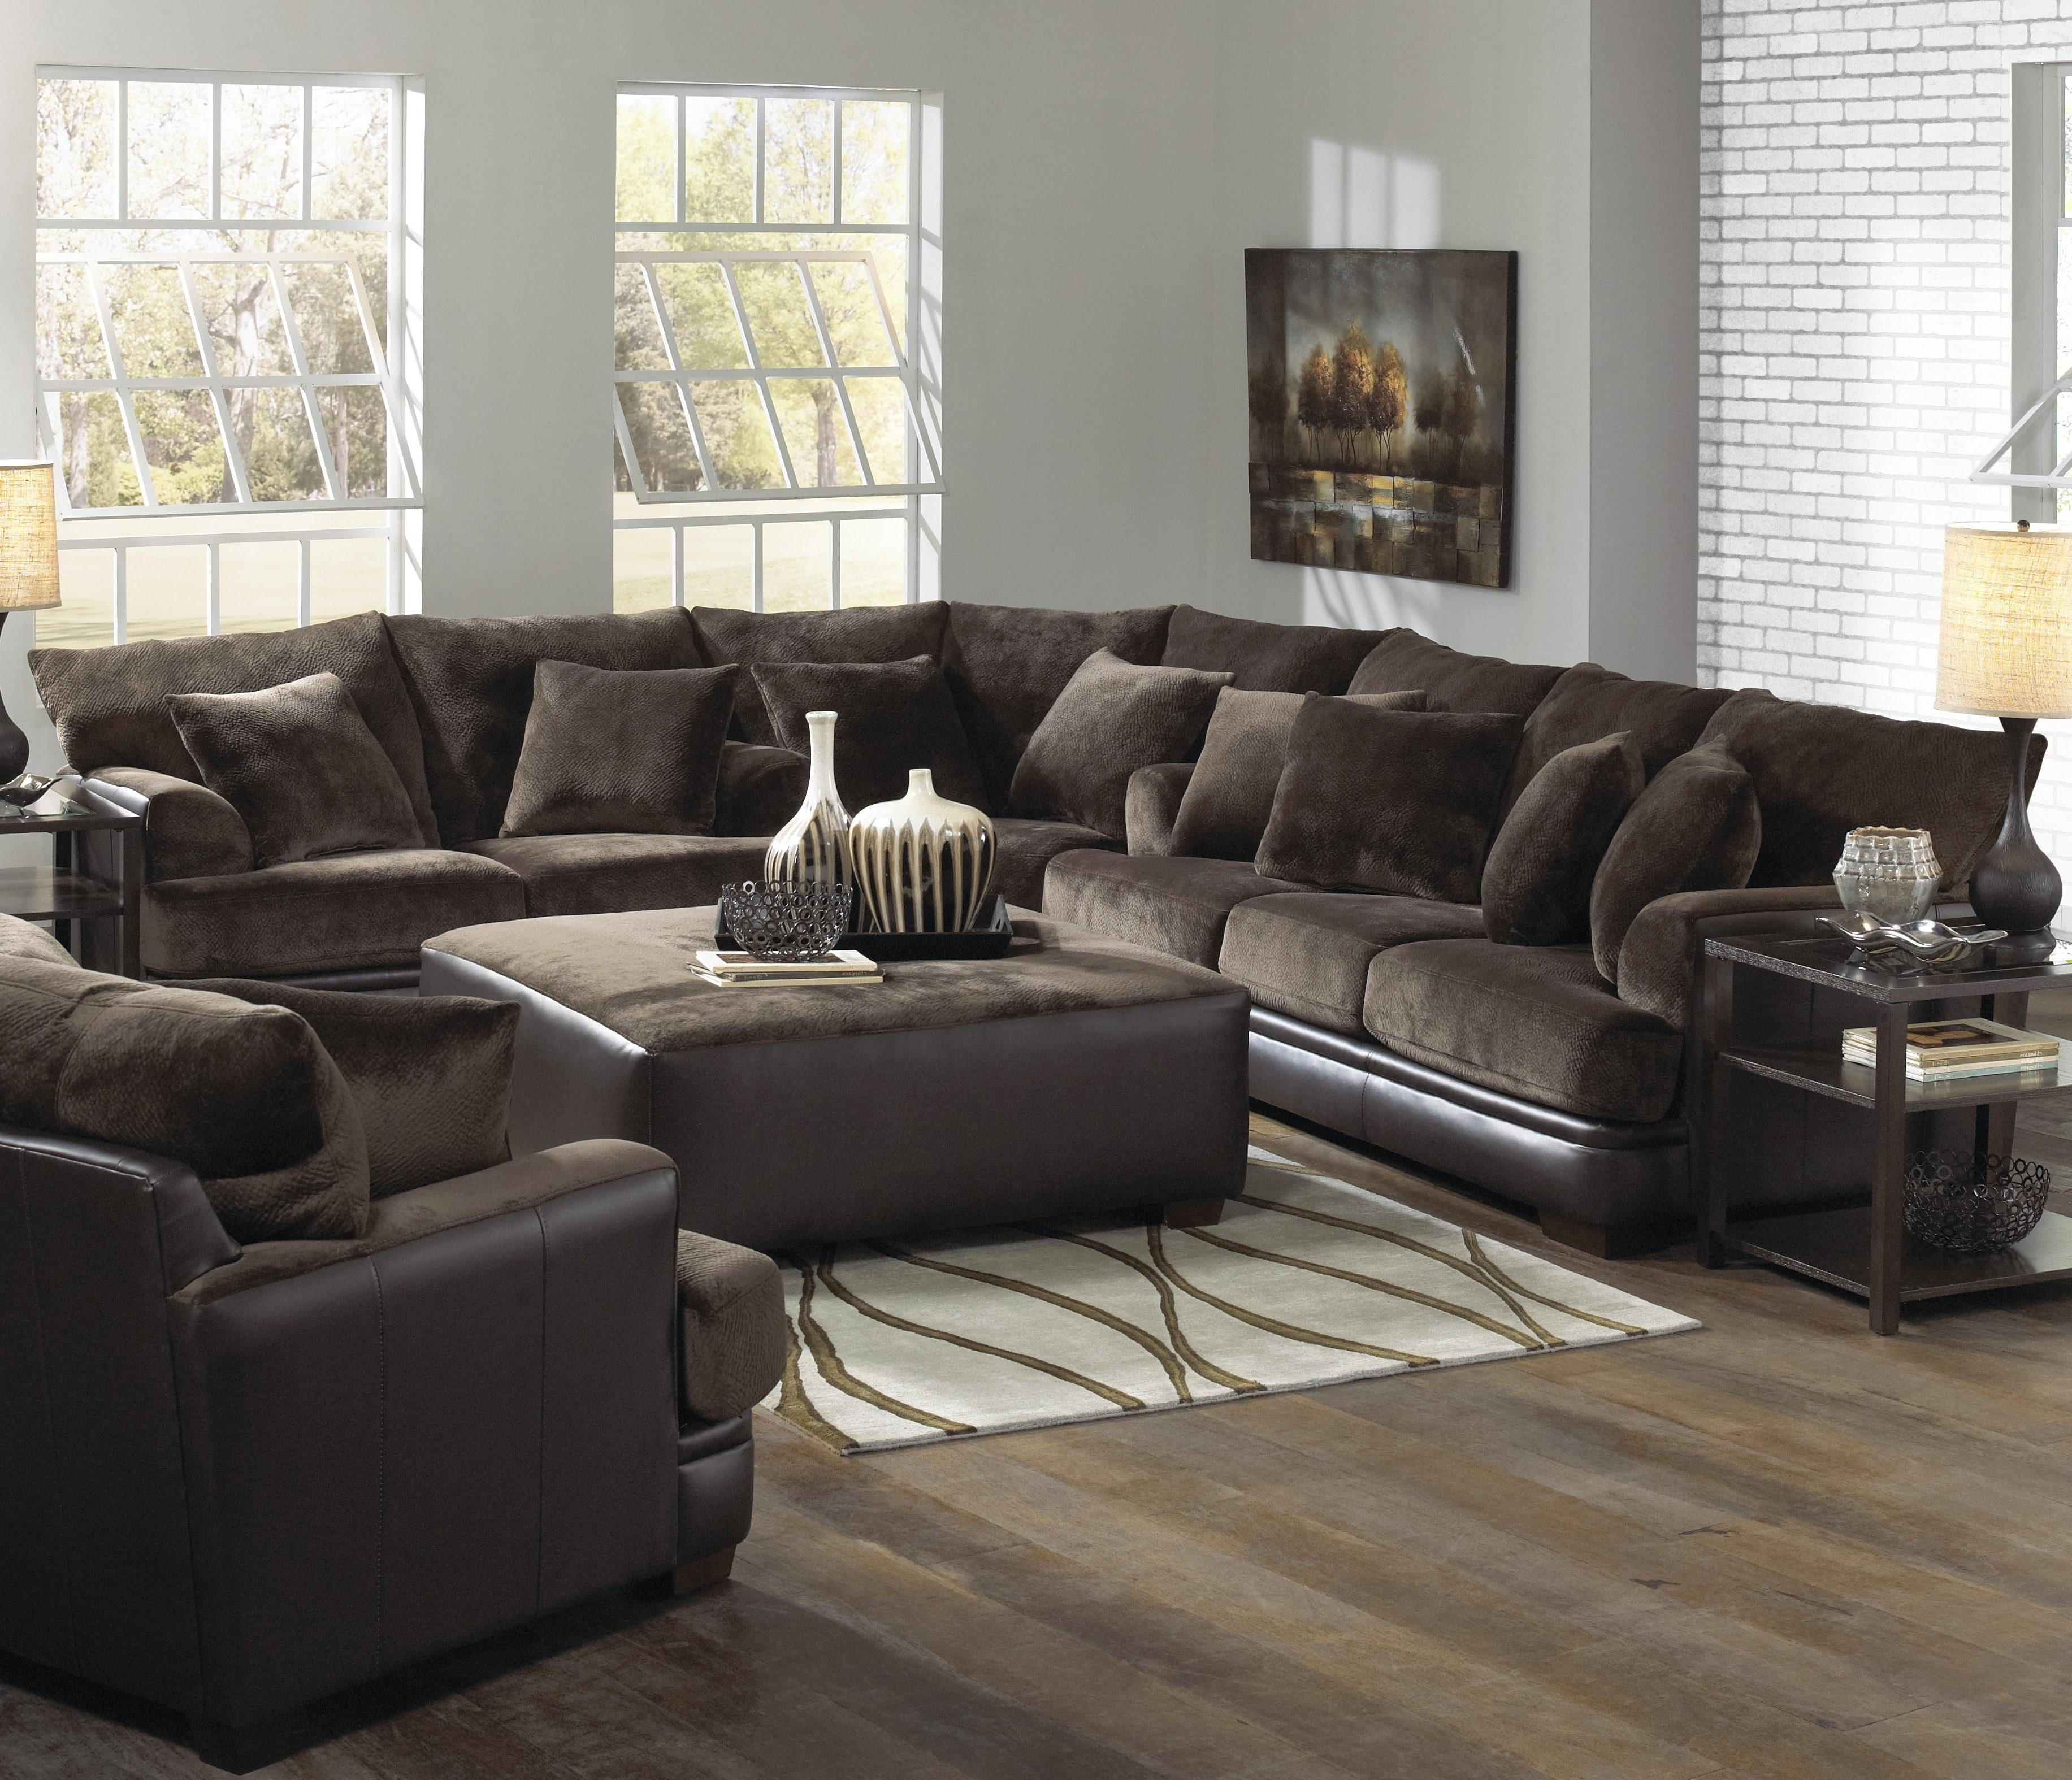 Most Current Extra Large Sectional Leather Couches • Leather Sofa Within Extra Large Sectional Sofas (View 7 of 15)